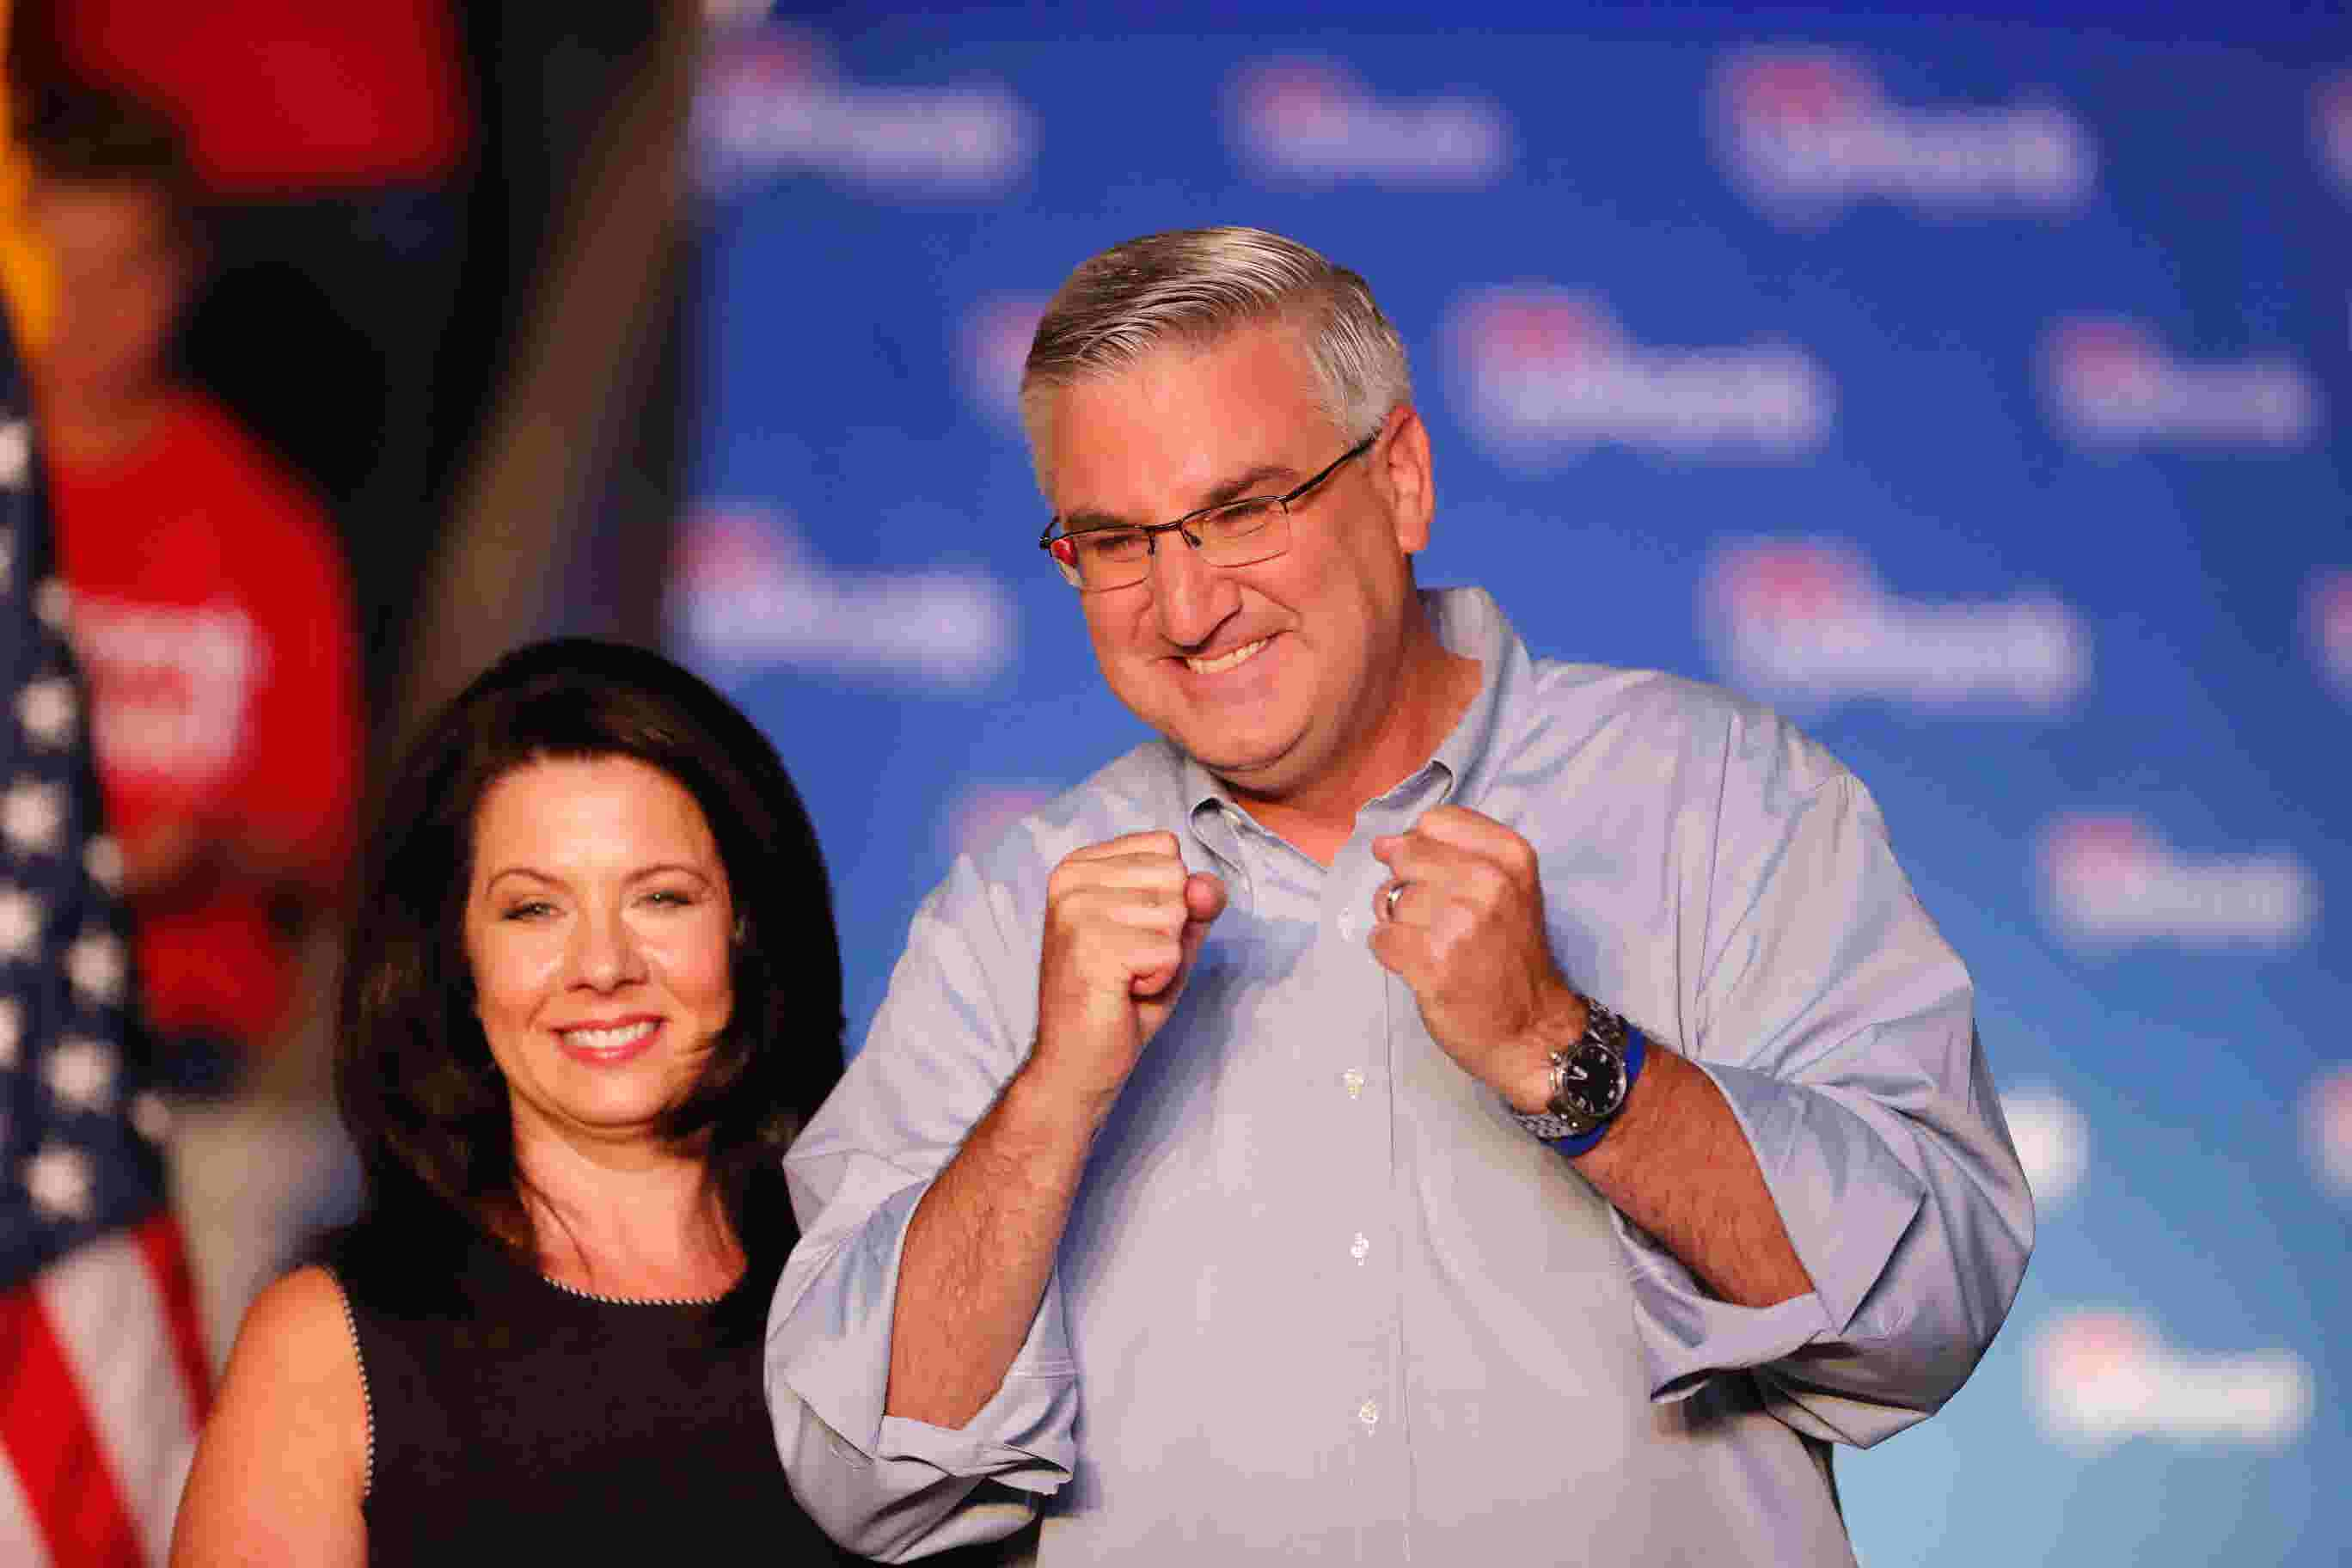 Gov. Eric Holcomb to run for reelection: 'Let's keep making Hoosier history for four more years'